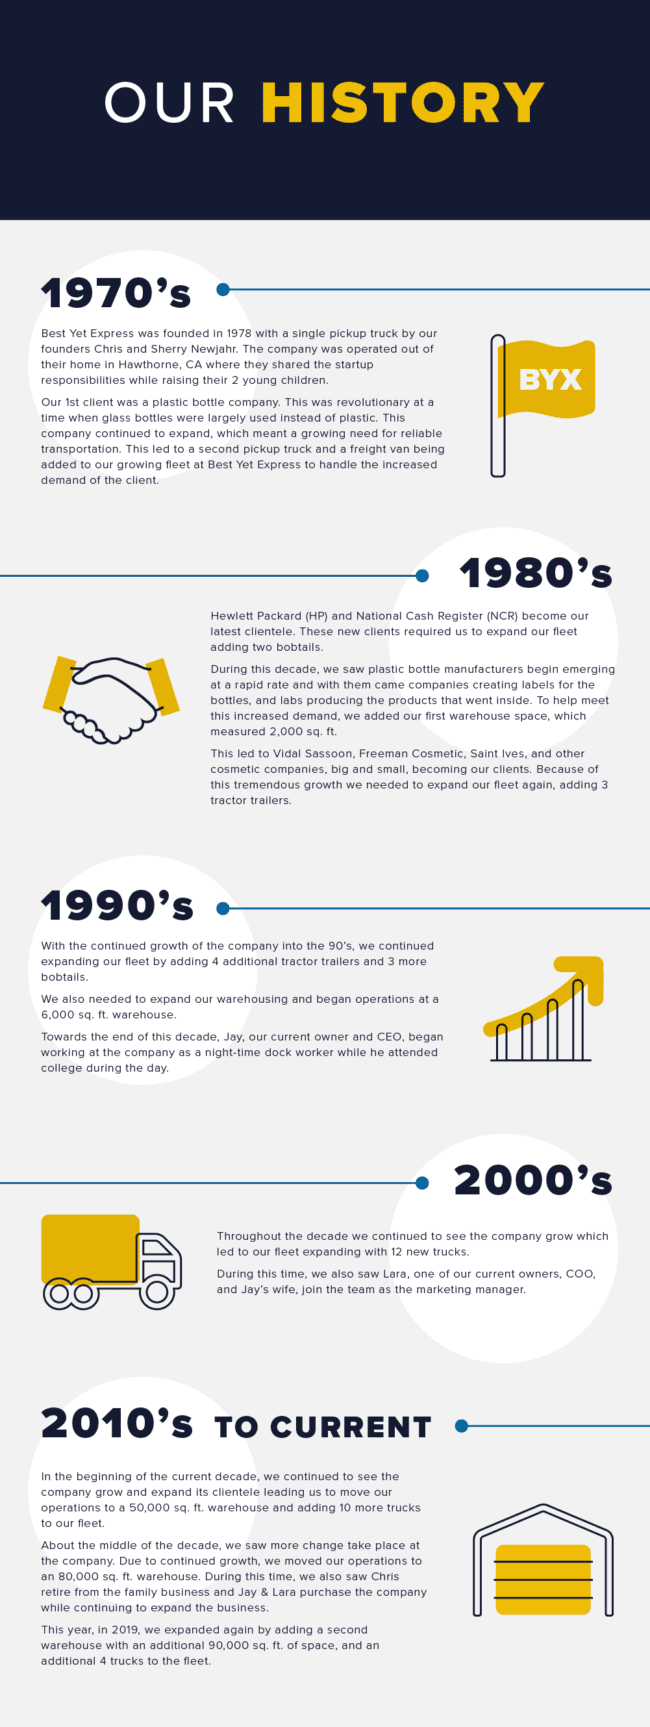 Timeline of the History of the Company, Best Yet Express